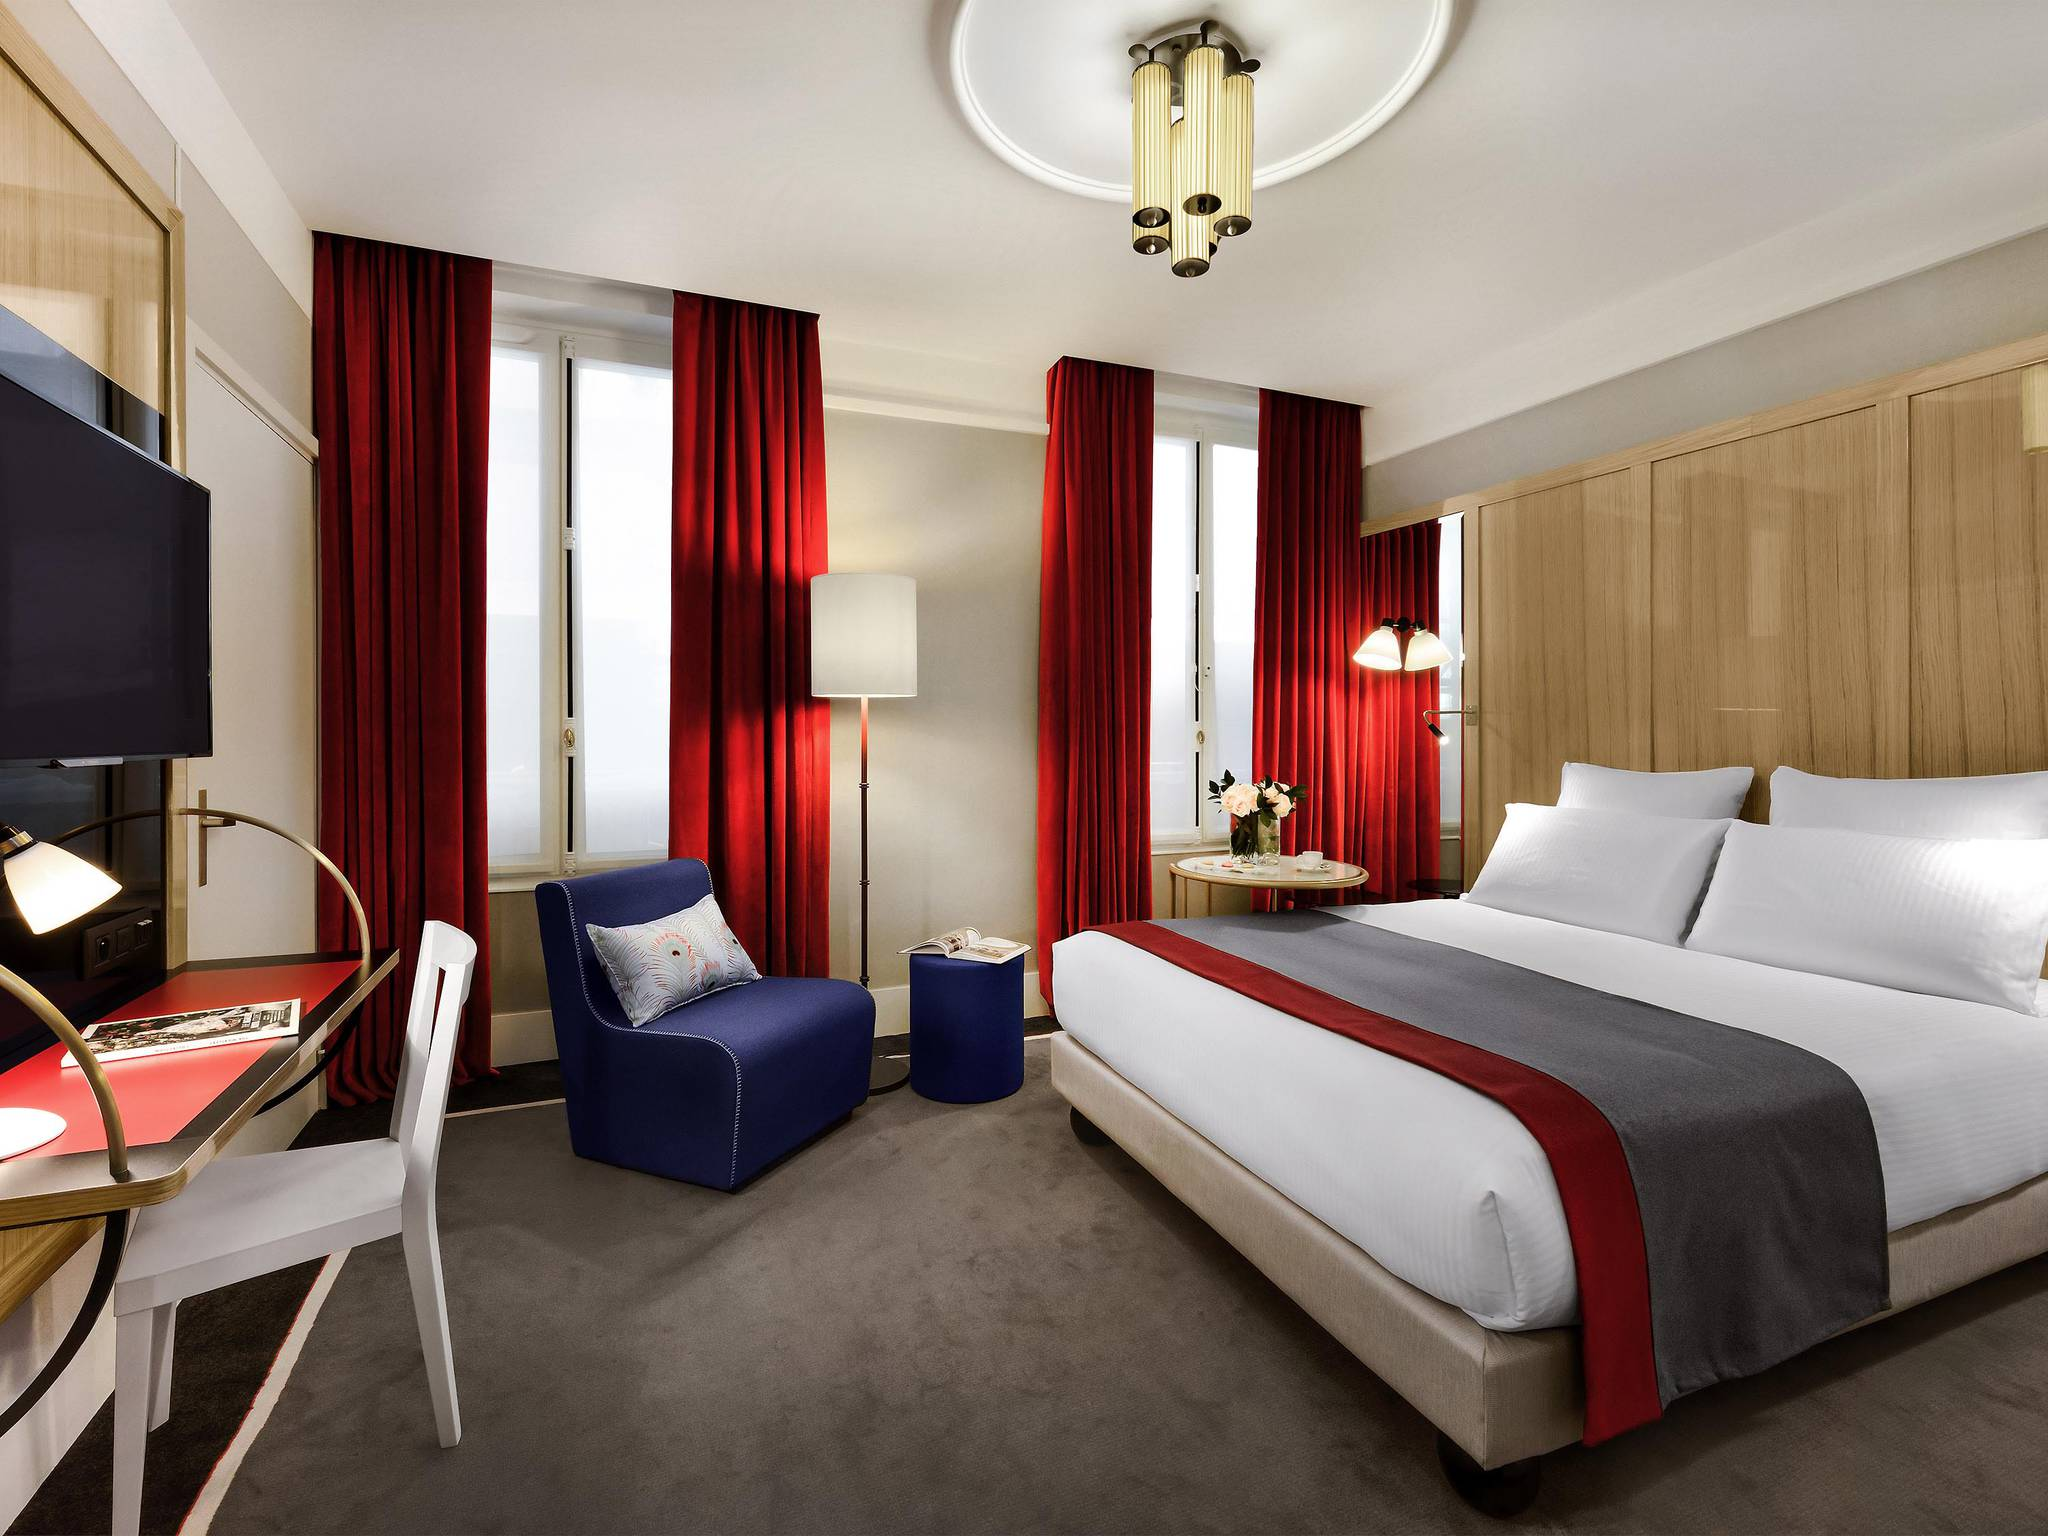 Hotel – Hotel L'Echiquier Opéra Paris - MGallery by Sofitel